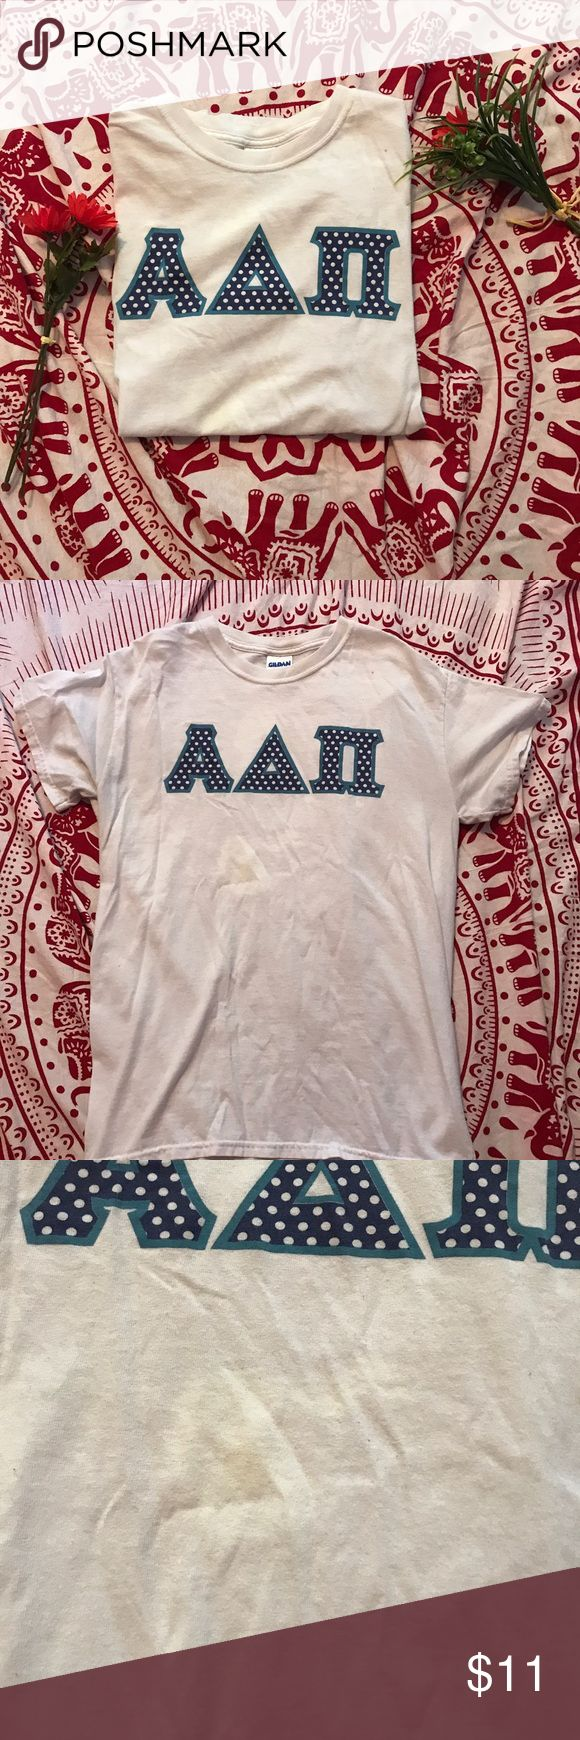 Polka Dot Alpha Delta Pi Letter Shirt Show off your ADPi spirit with this polka dot letter shirt! There is a small discoloring below letters, but it is not terribly noticeable and could possibly come out in the wash! Open to offers! Gildan Tops Tees - Short Sleeve